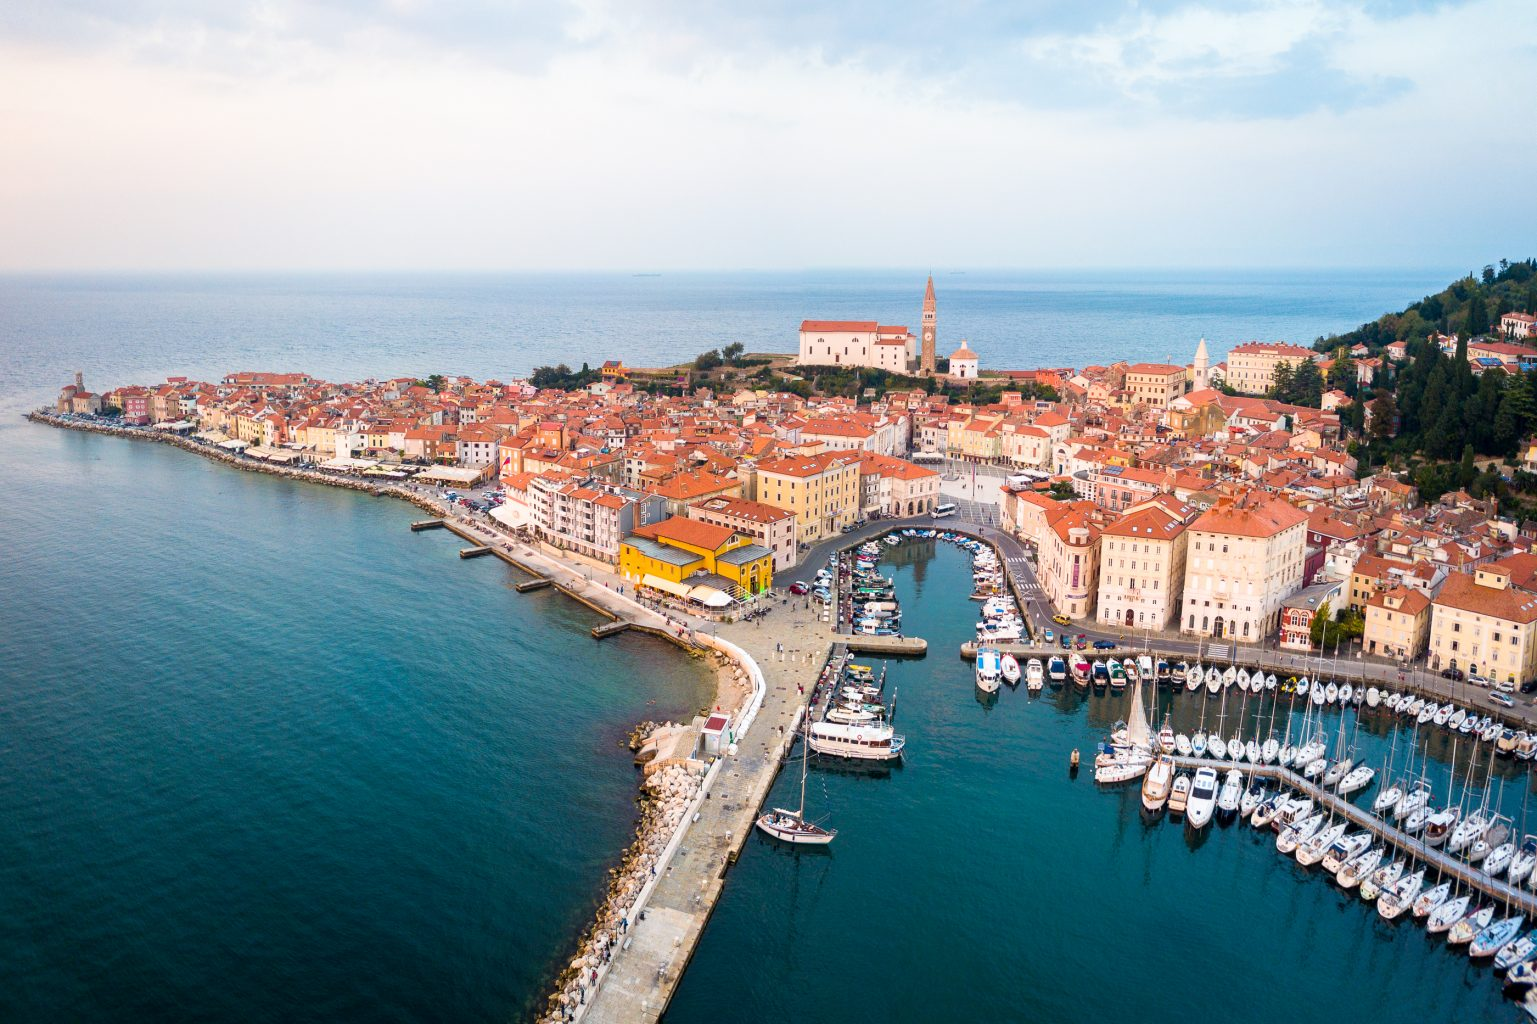 Piran from the air